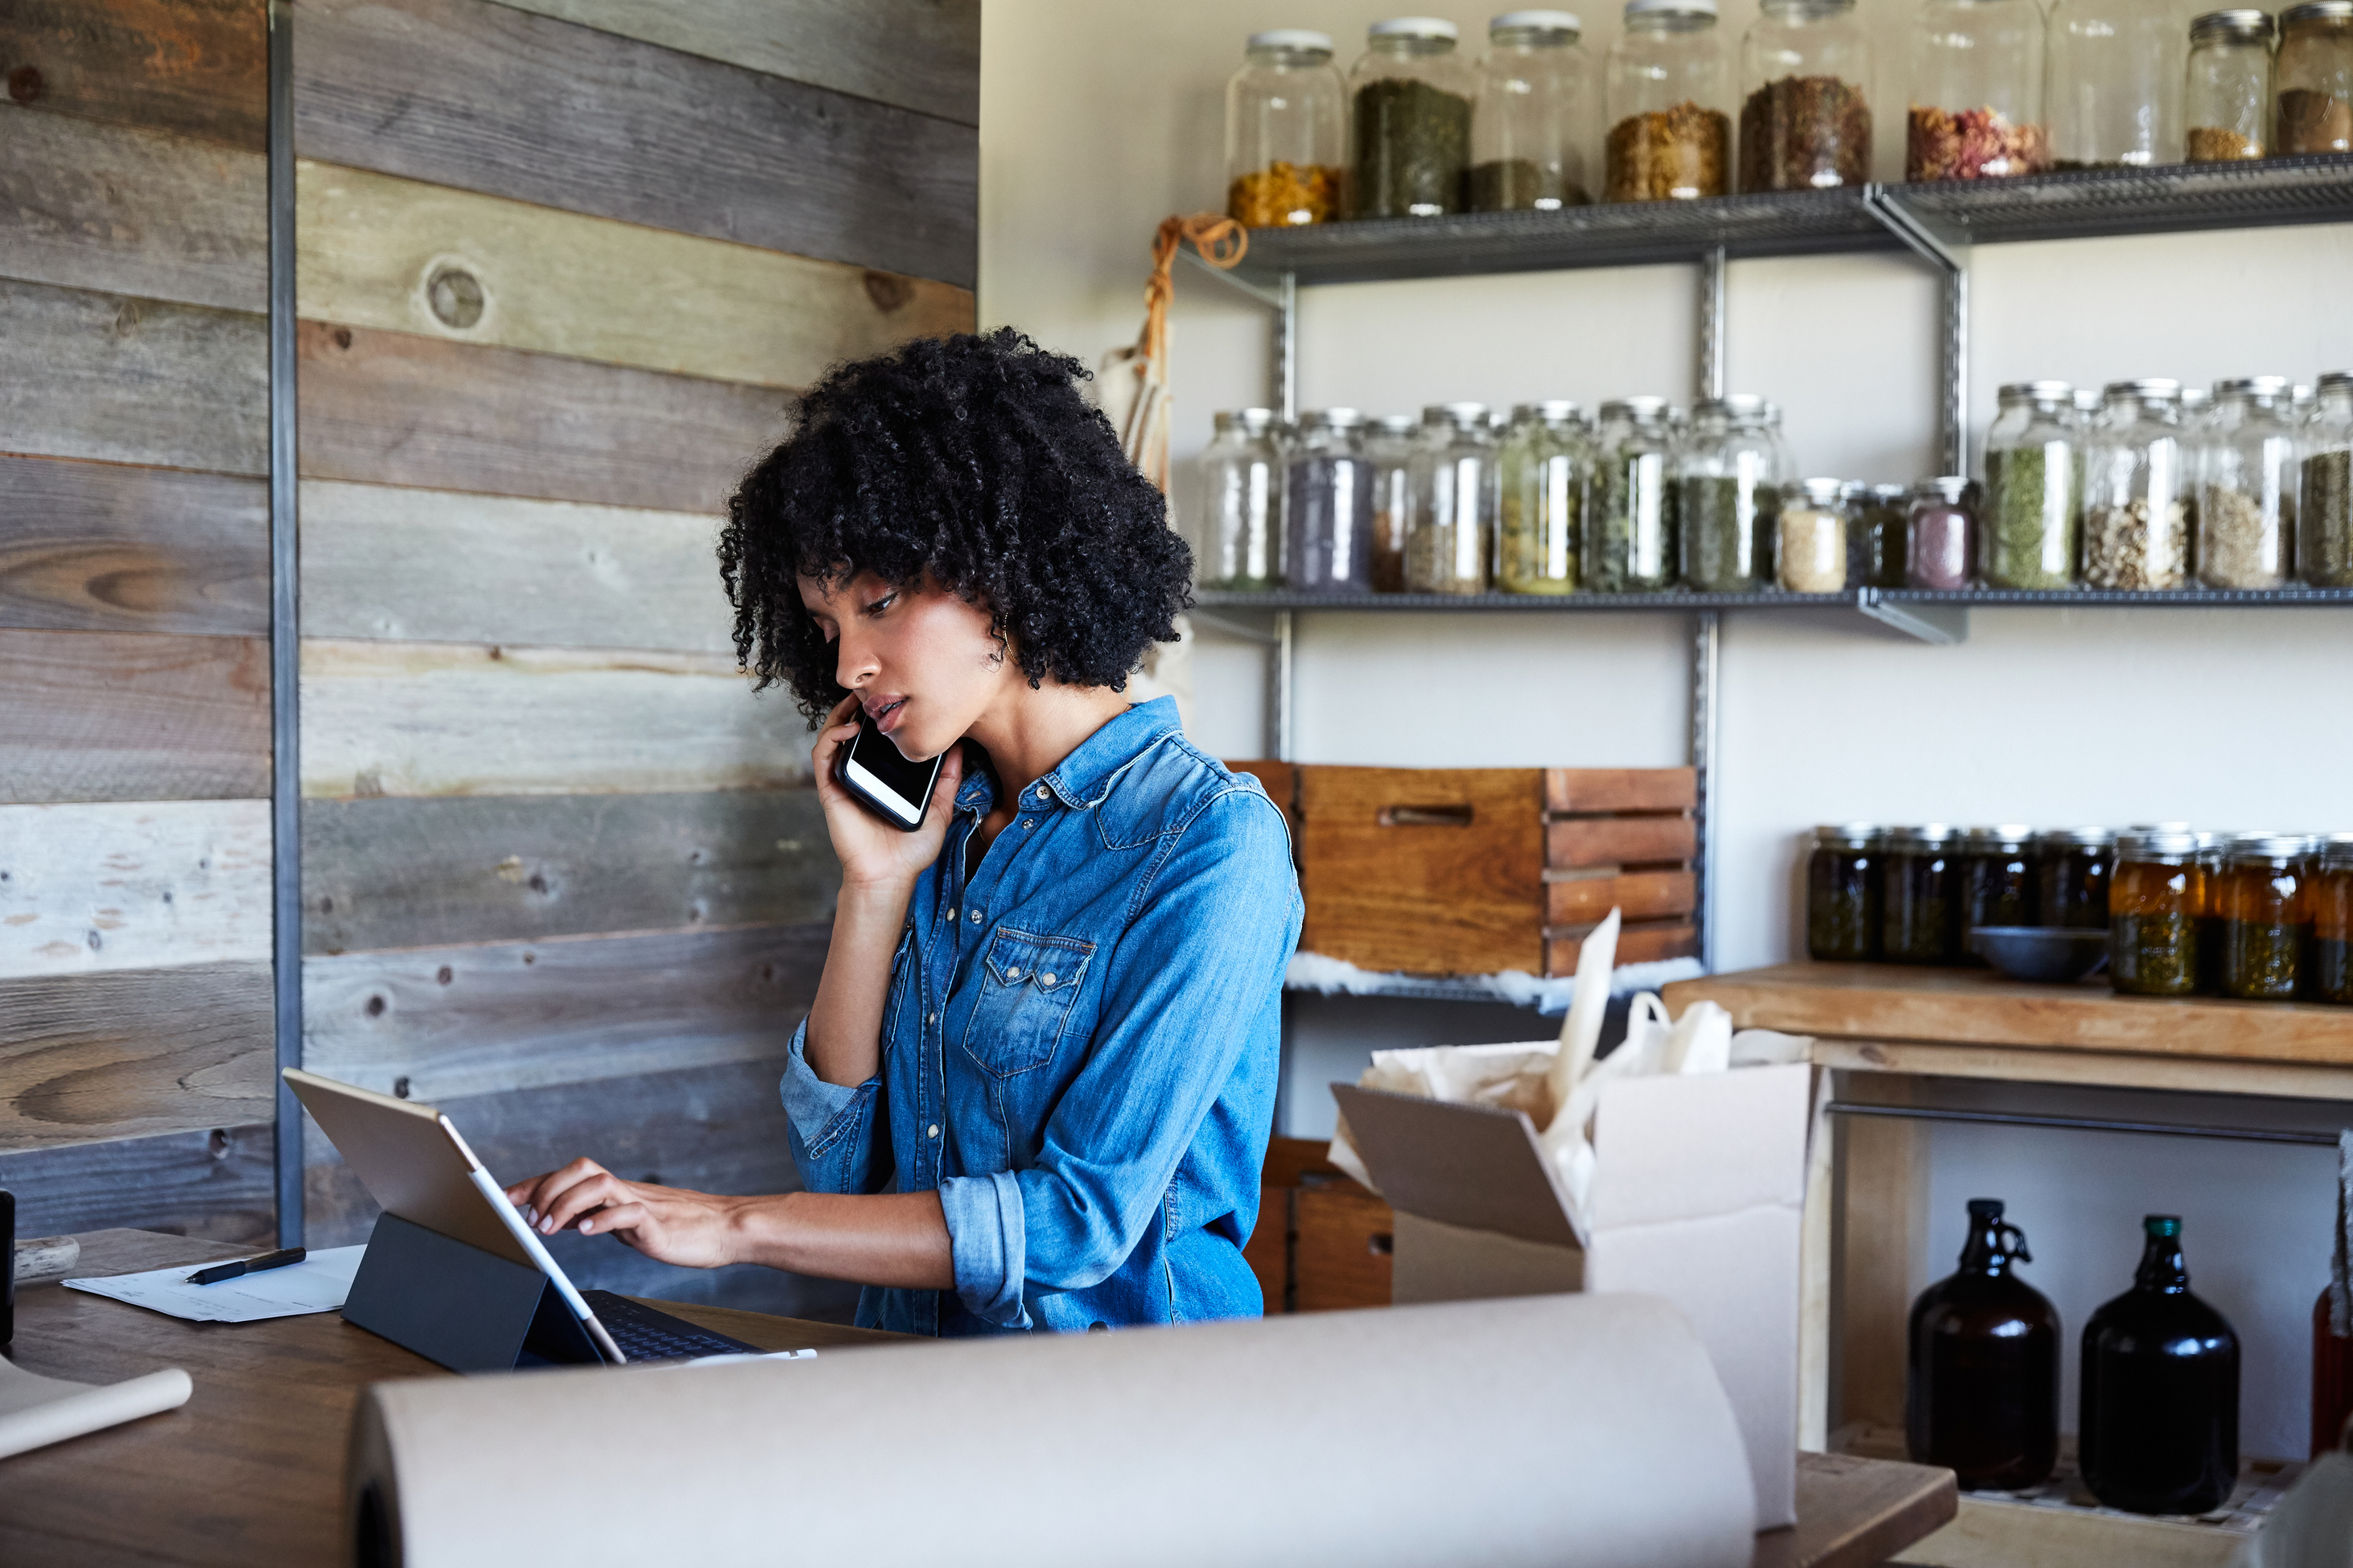 A business woman in a jean shirt talking on her cell phone and touching a tablet device